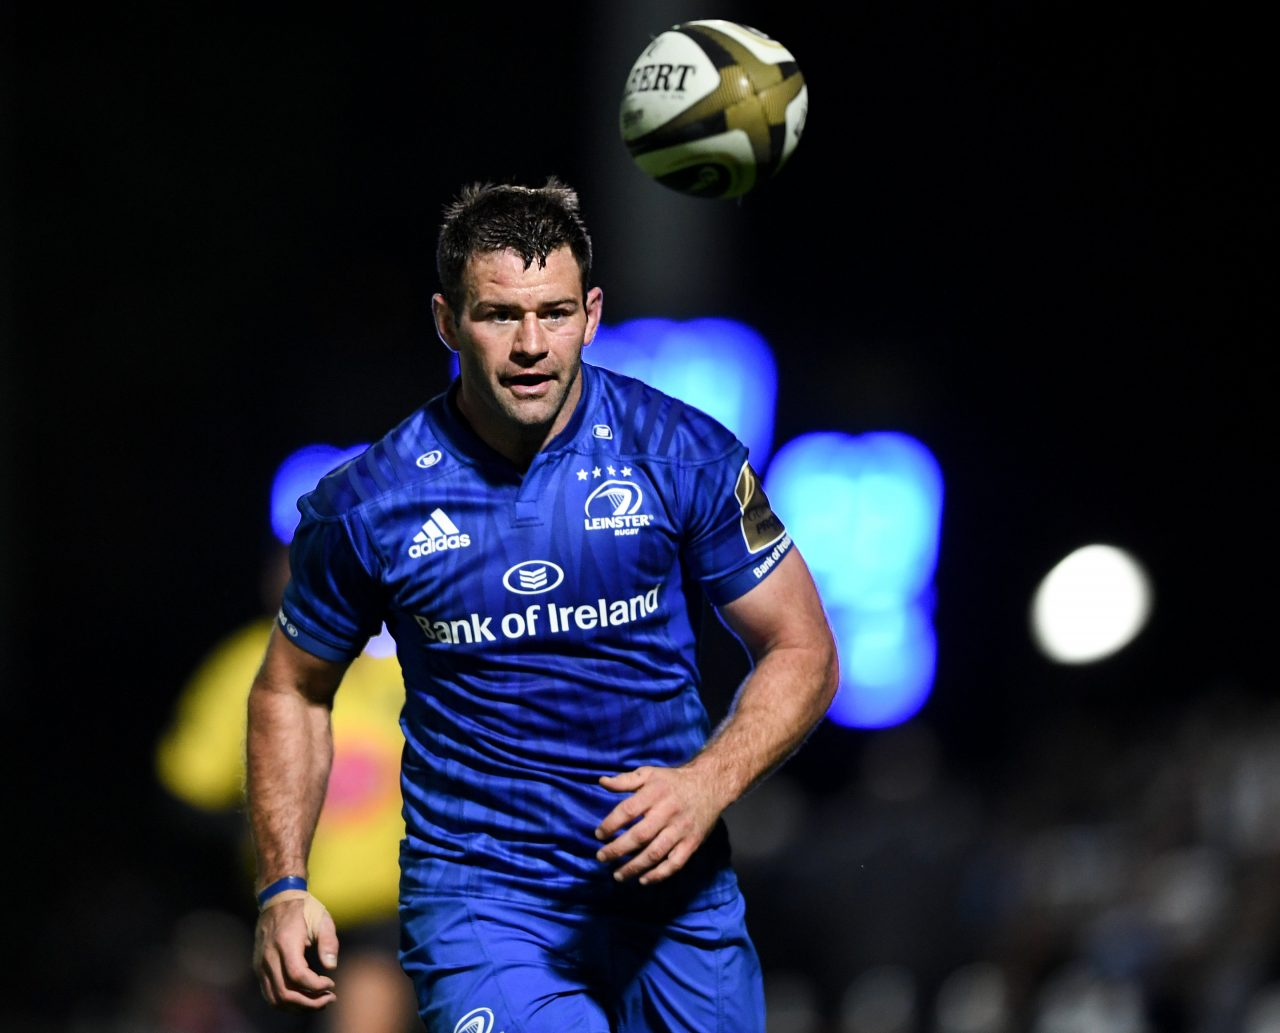 Injury update ahead of return to Champions Cup action